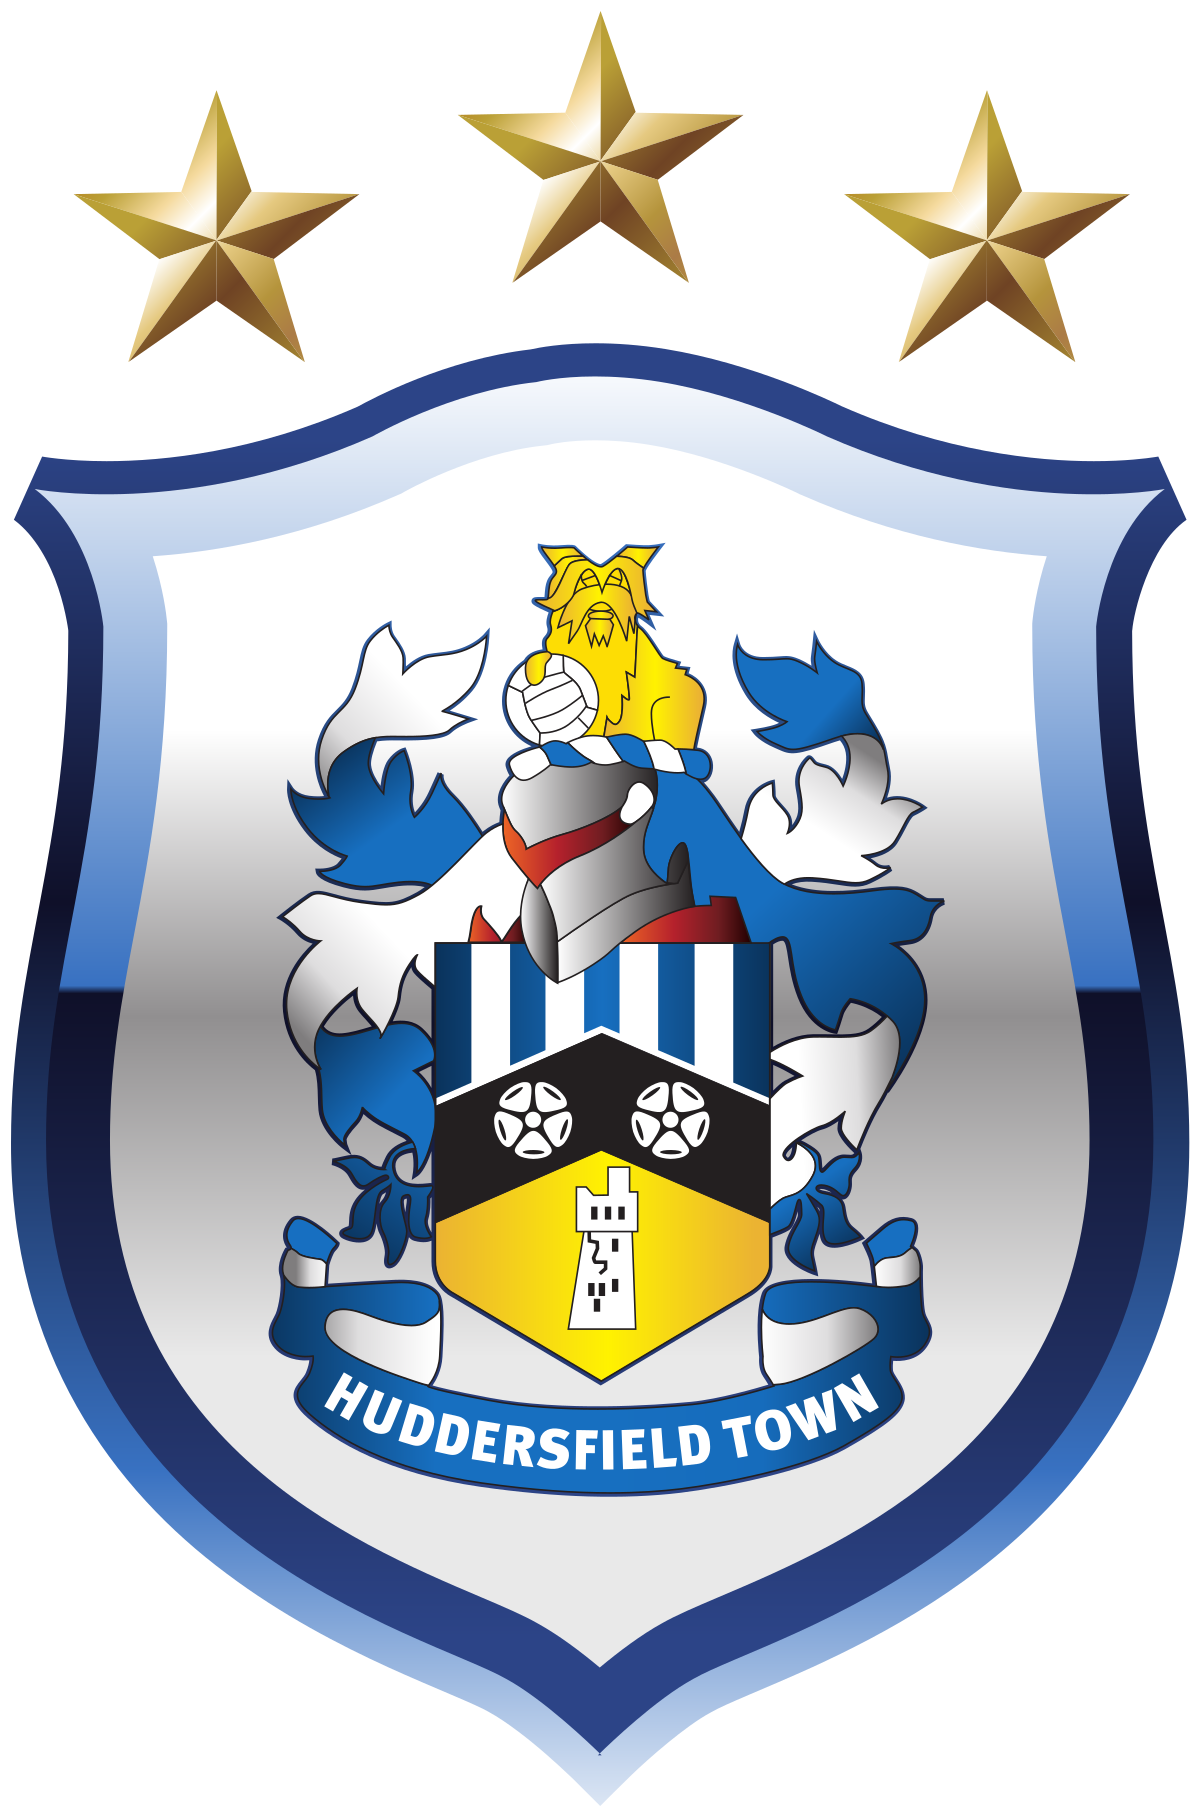 Huddersfield Town Association Football Club